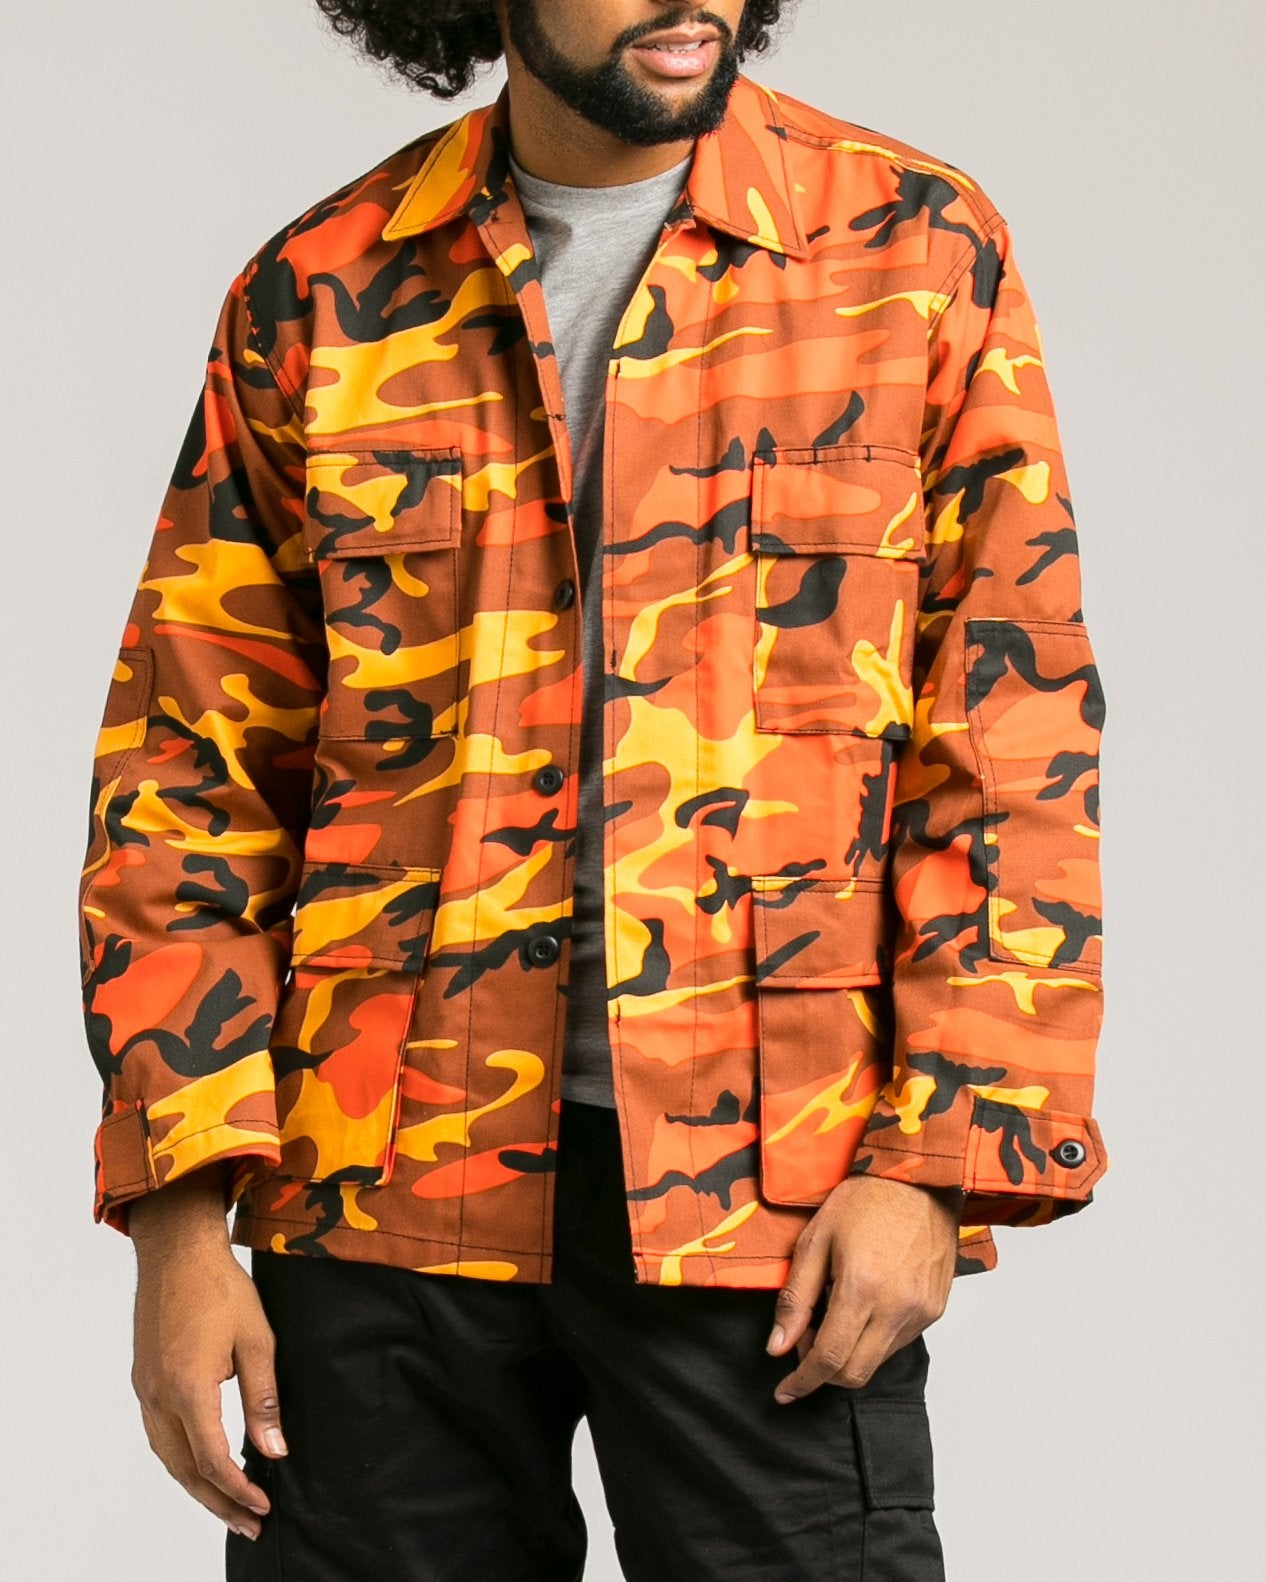 B.D.U. Shirt Jacket - Color: Savage Orange Camo | Orange